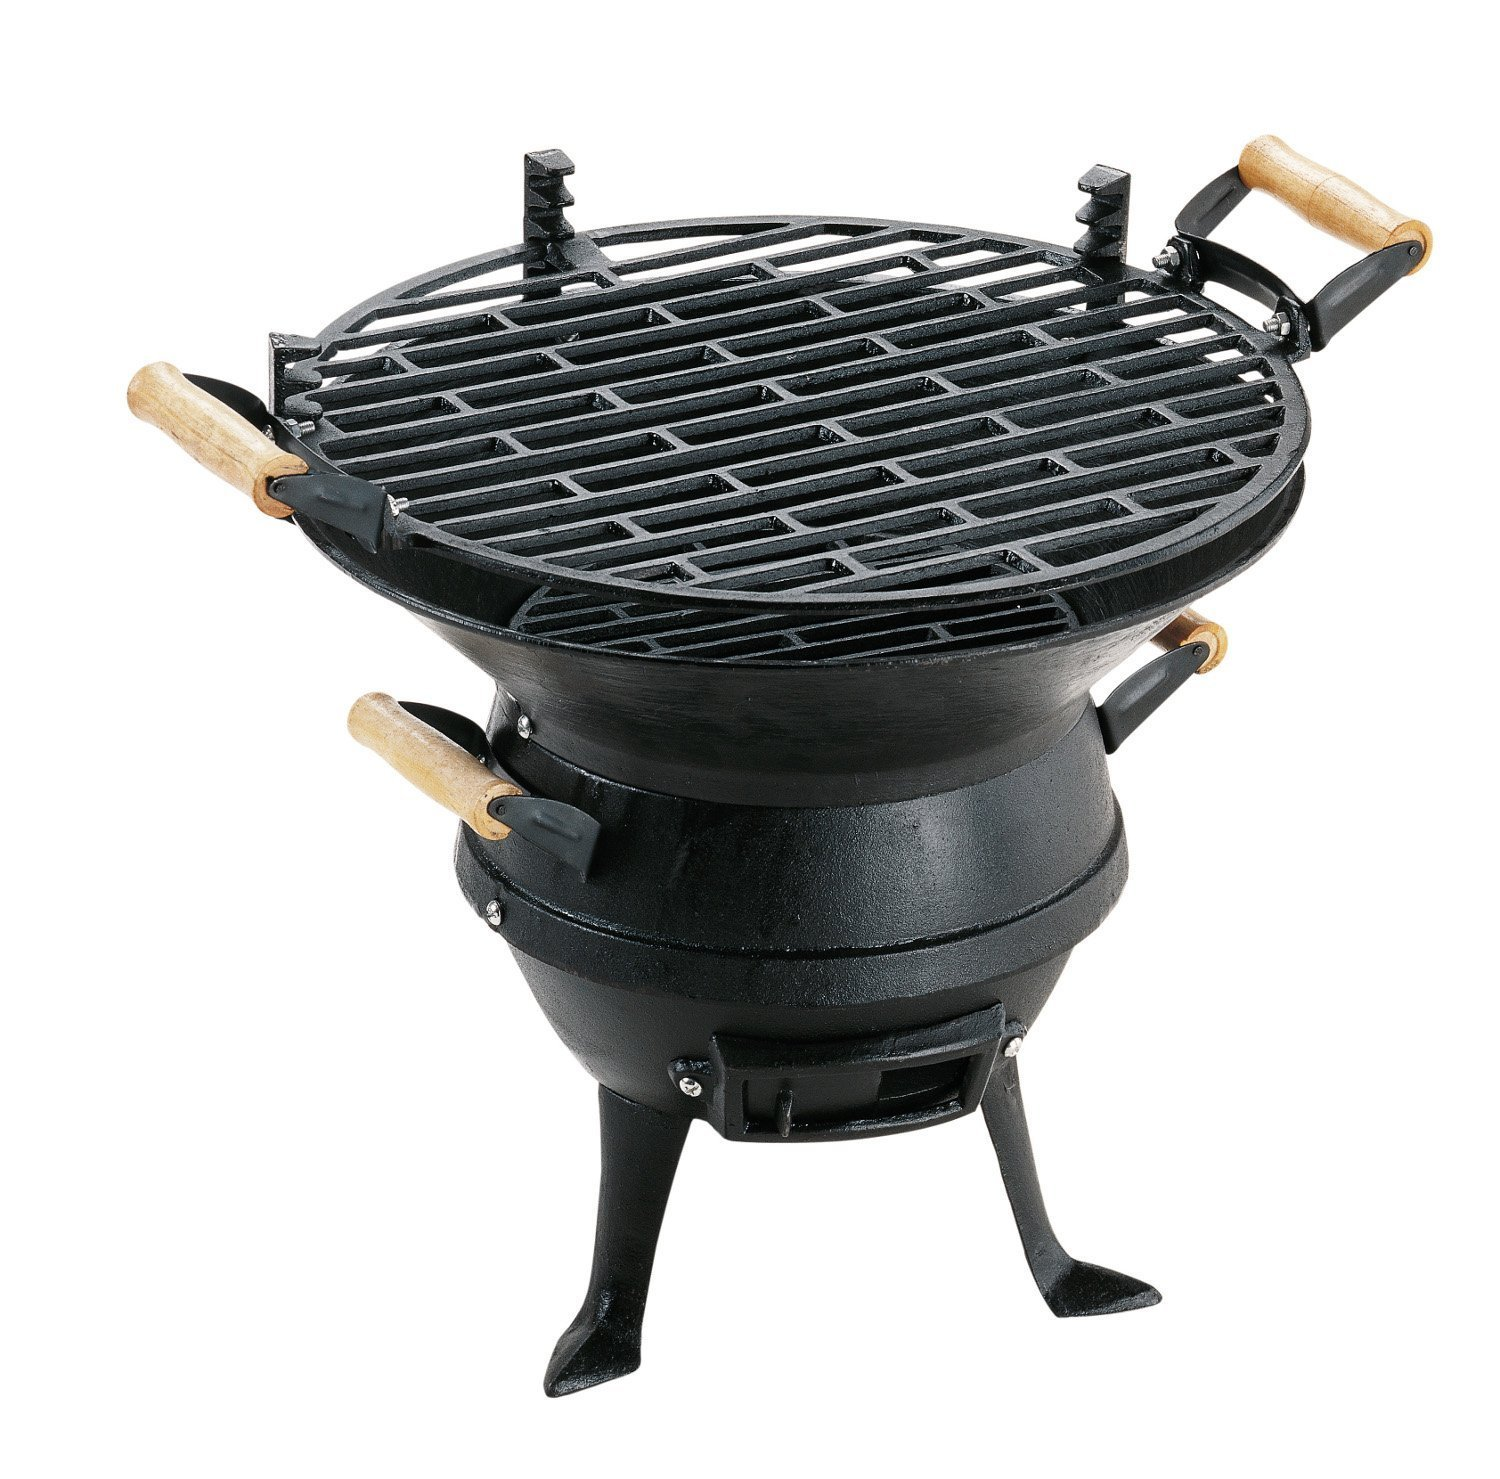 Black Barrel Charcoal BBQ w// Cast Iron Adjustable Grill Garden Camping Barbeque